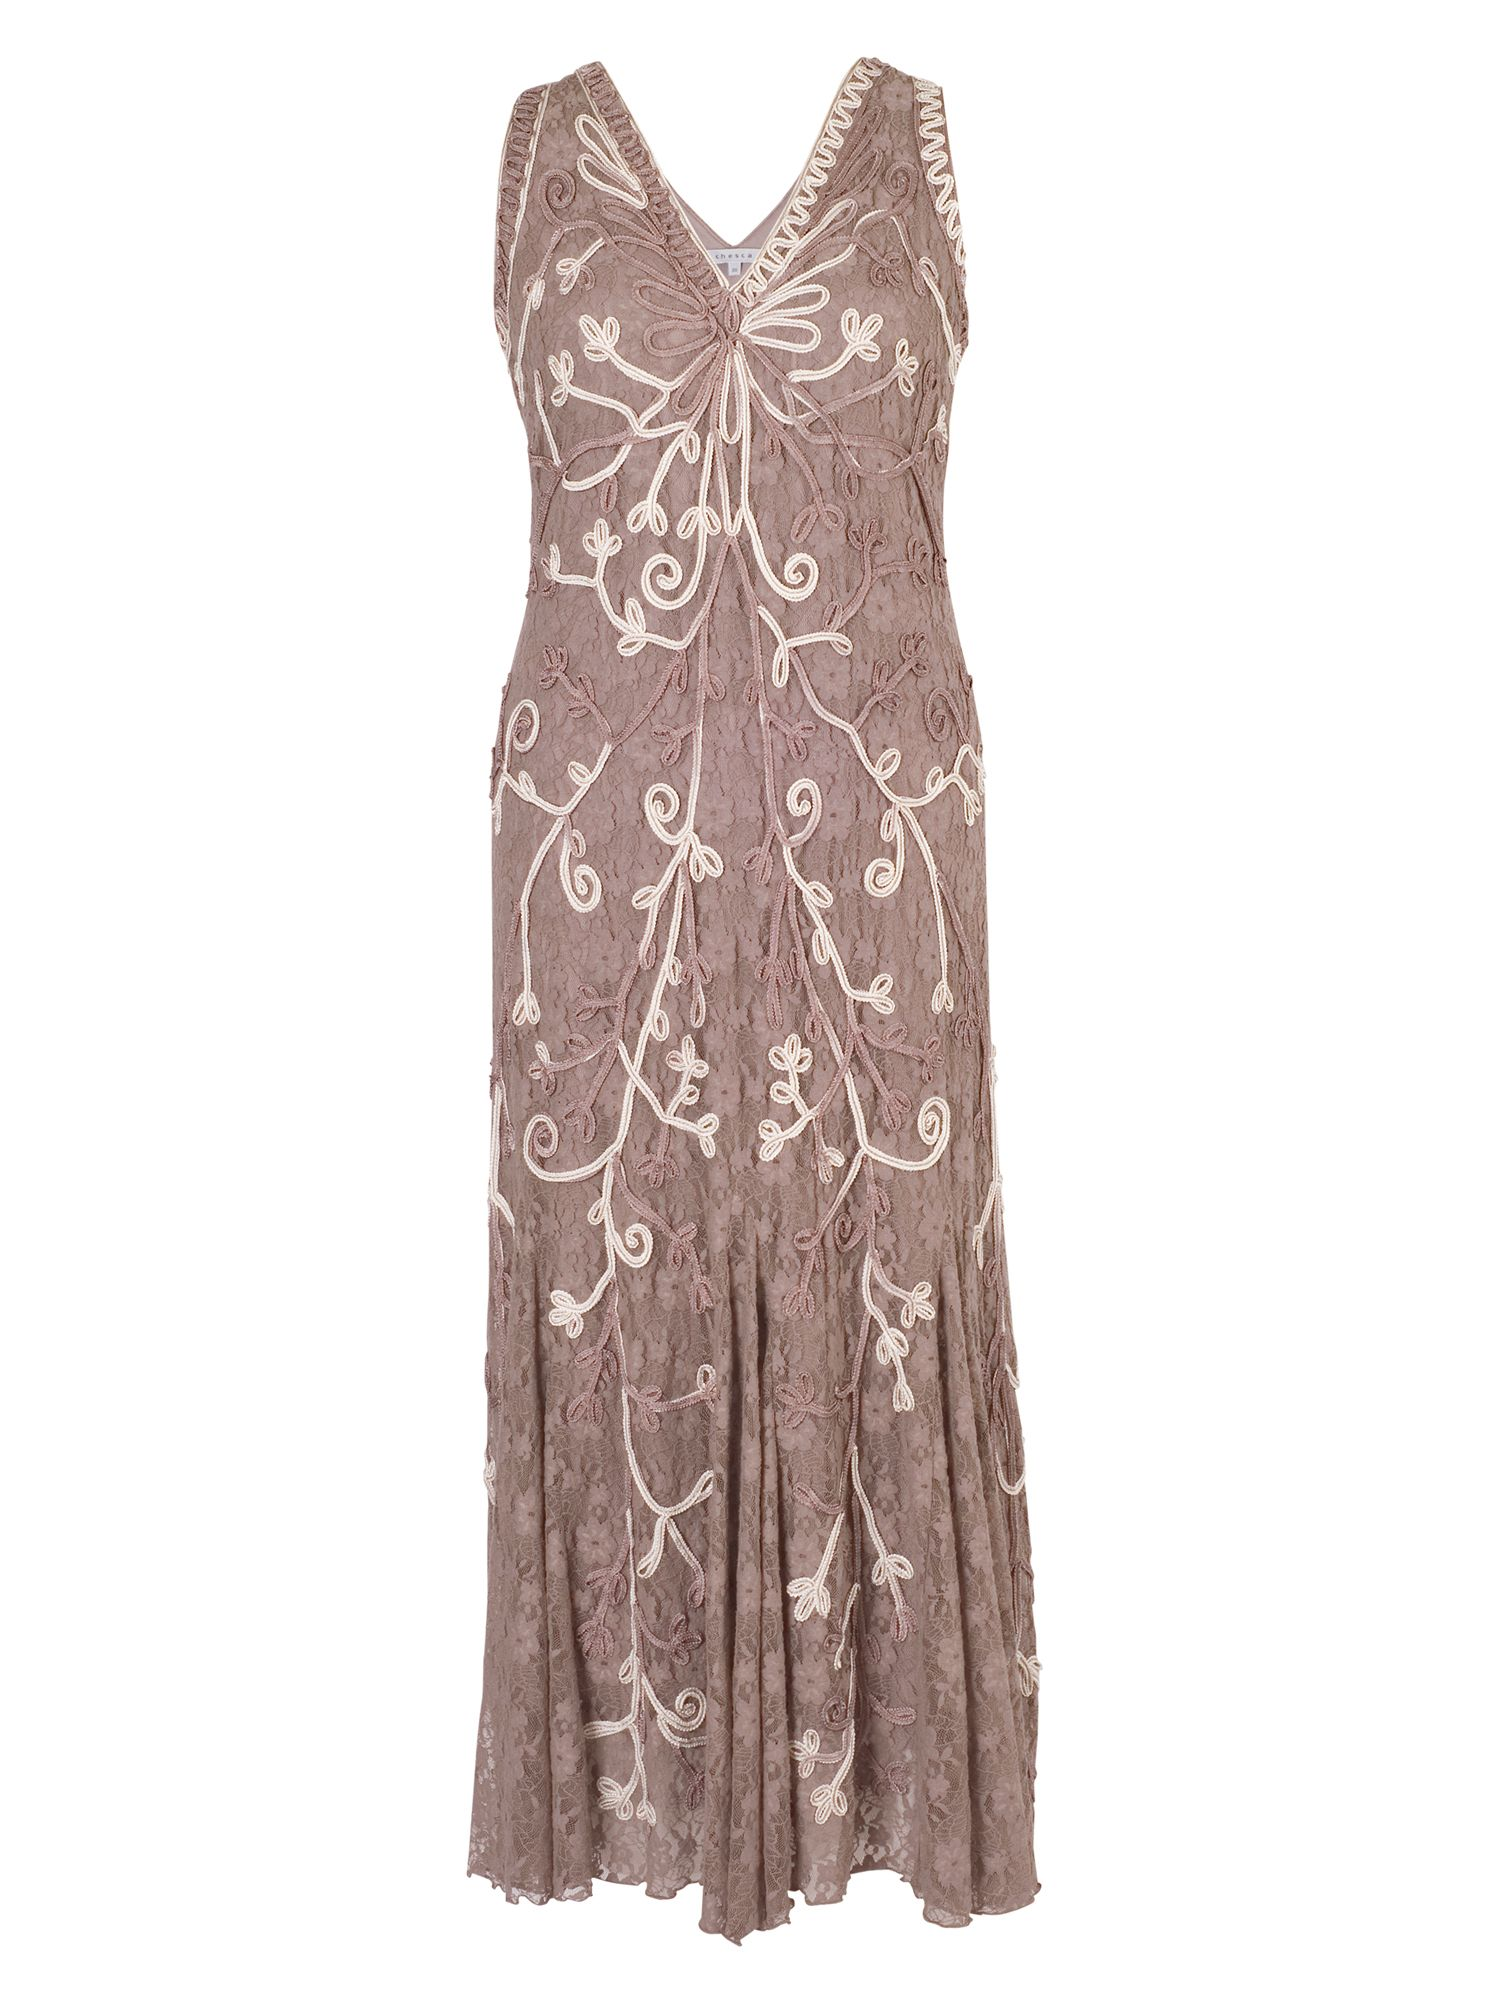 Chesca Plus Size Mink Ombre Cornelli Stretch Lace Dress Brown £255.00 AT vintagedancer.com